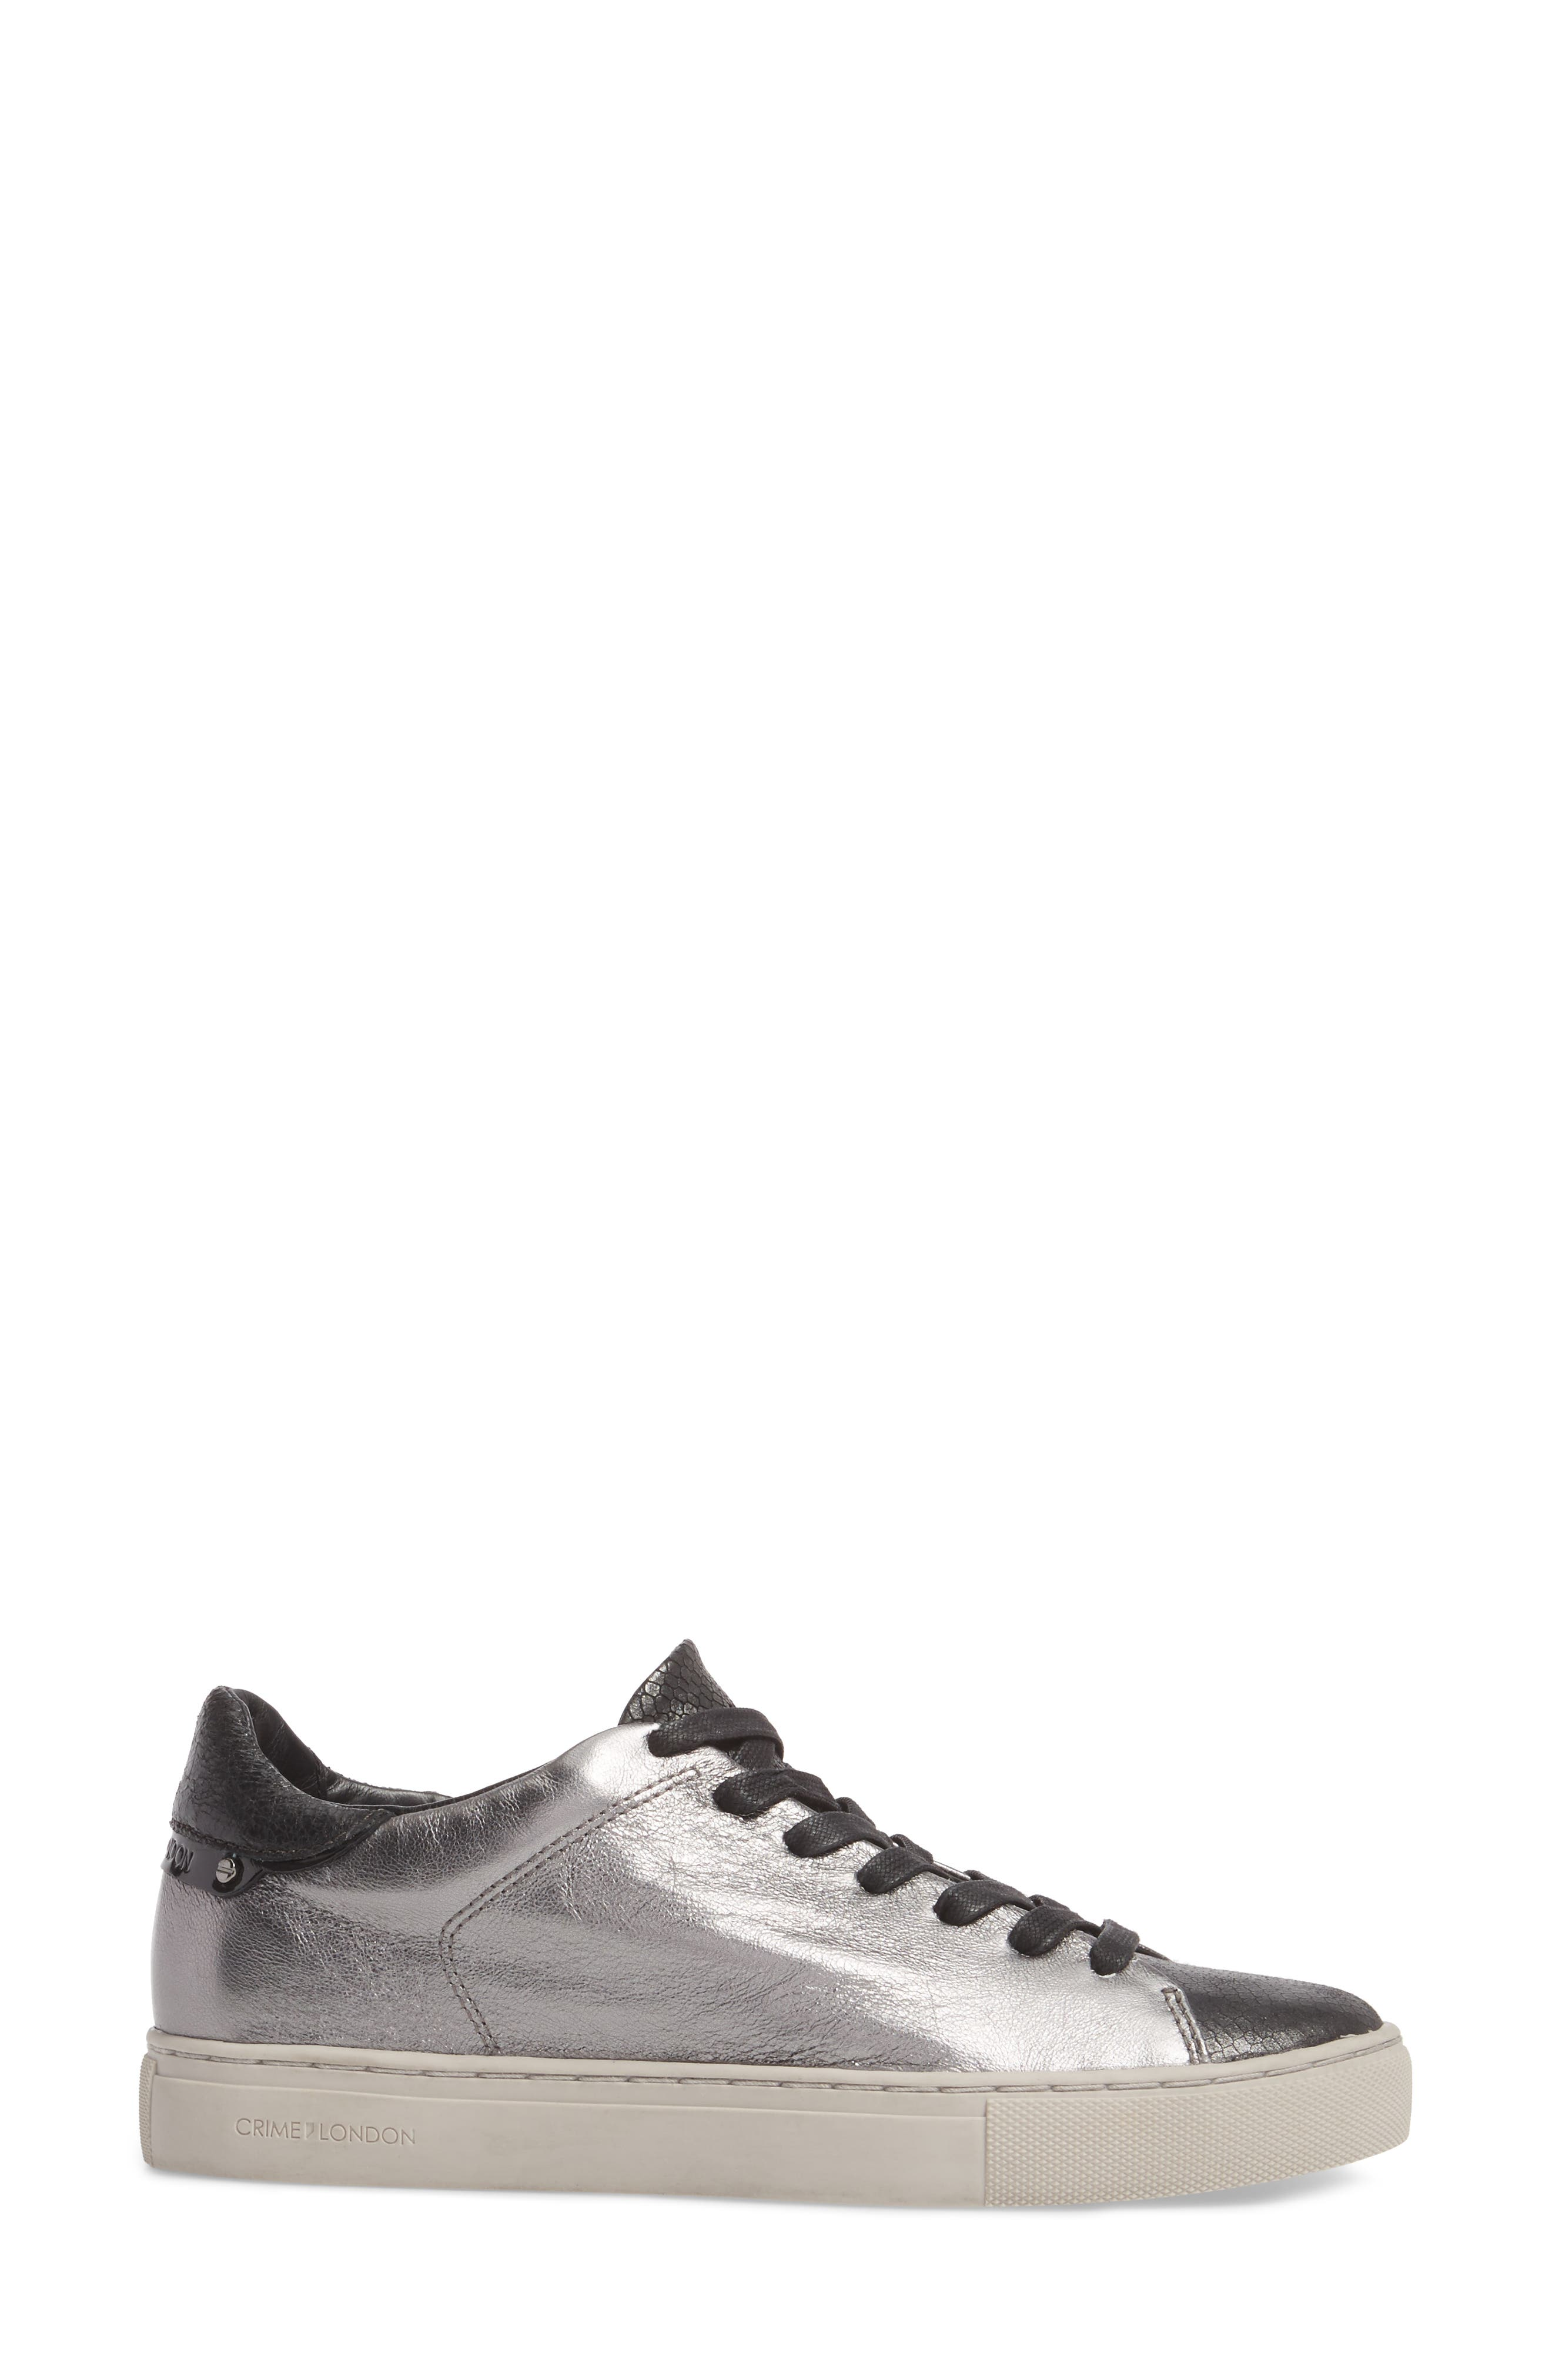 Beat Sneaker,                             Alternate thumbnail 3, color,                             Gray - 62